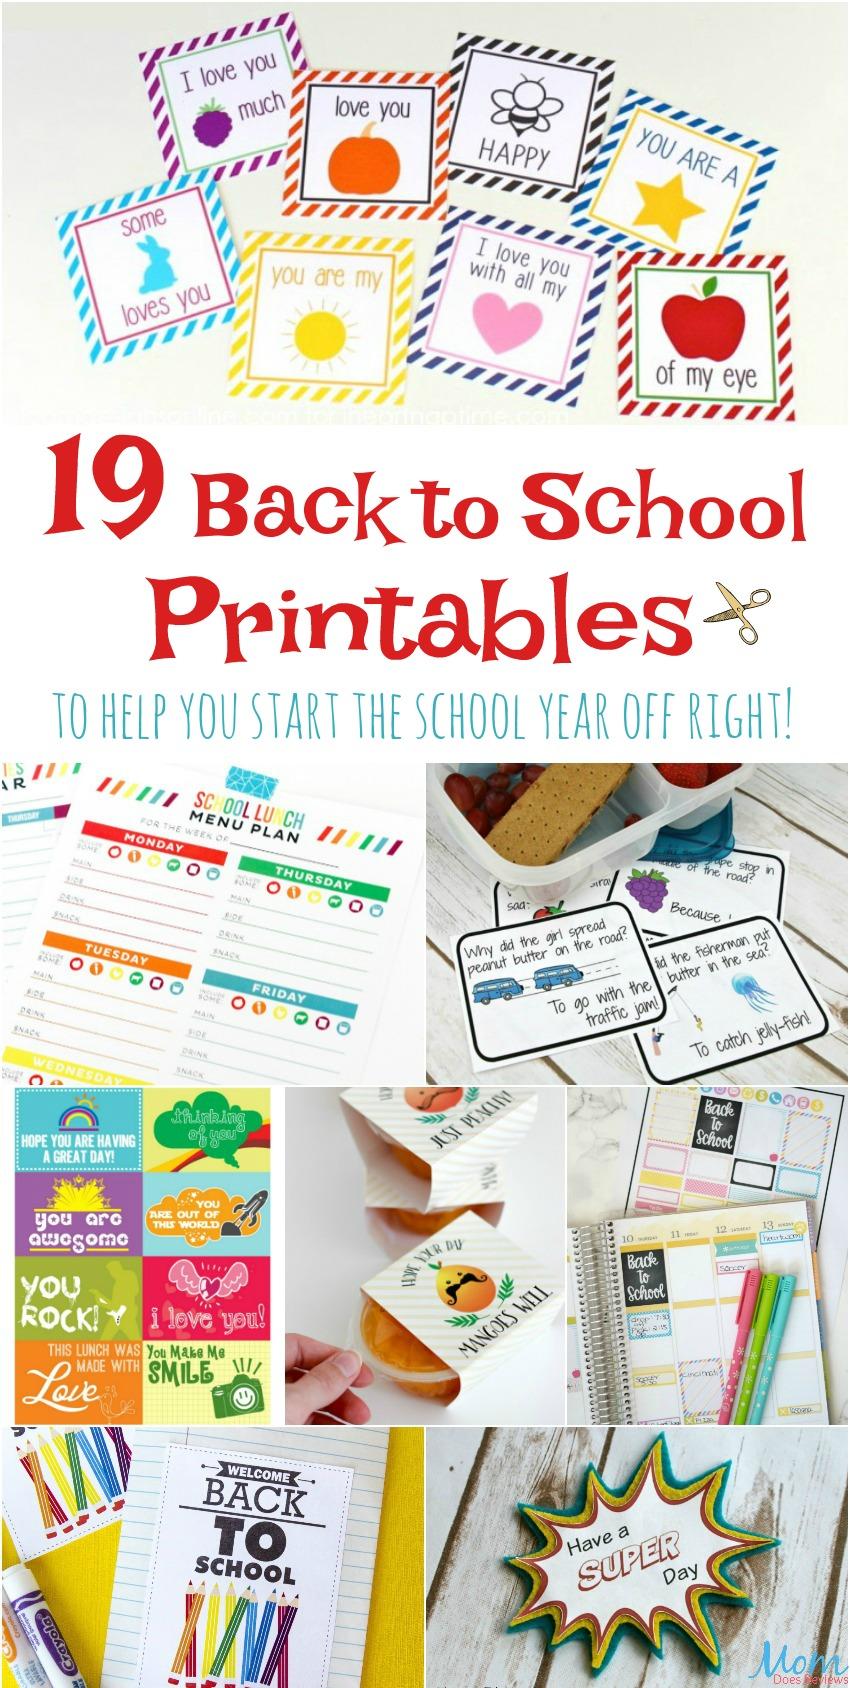 19 Back to School Printables to Help You Start the School Year Off Right